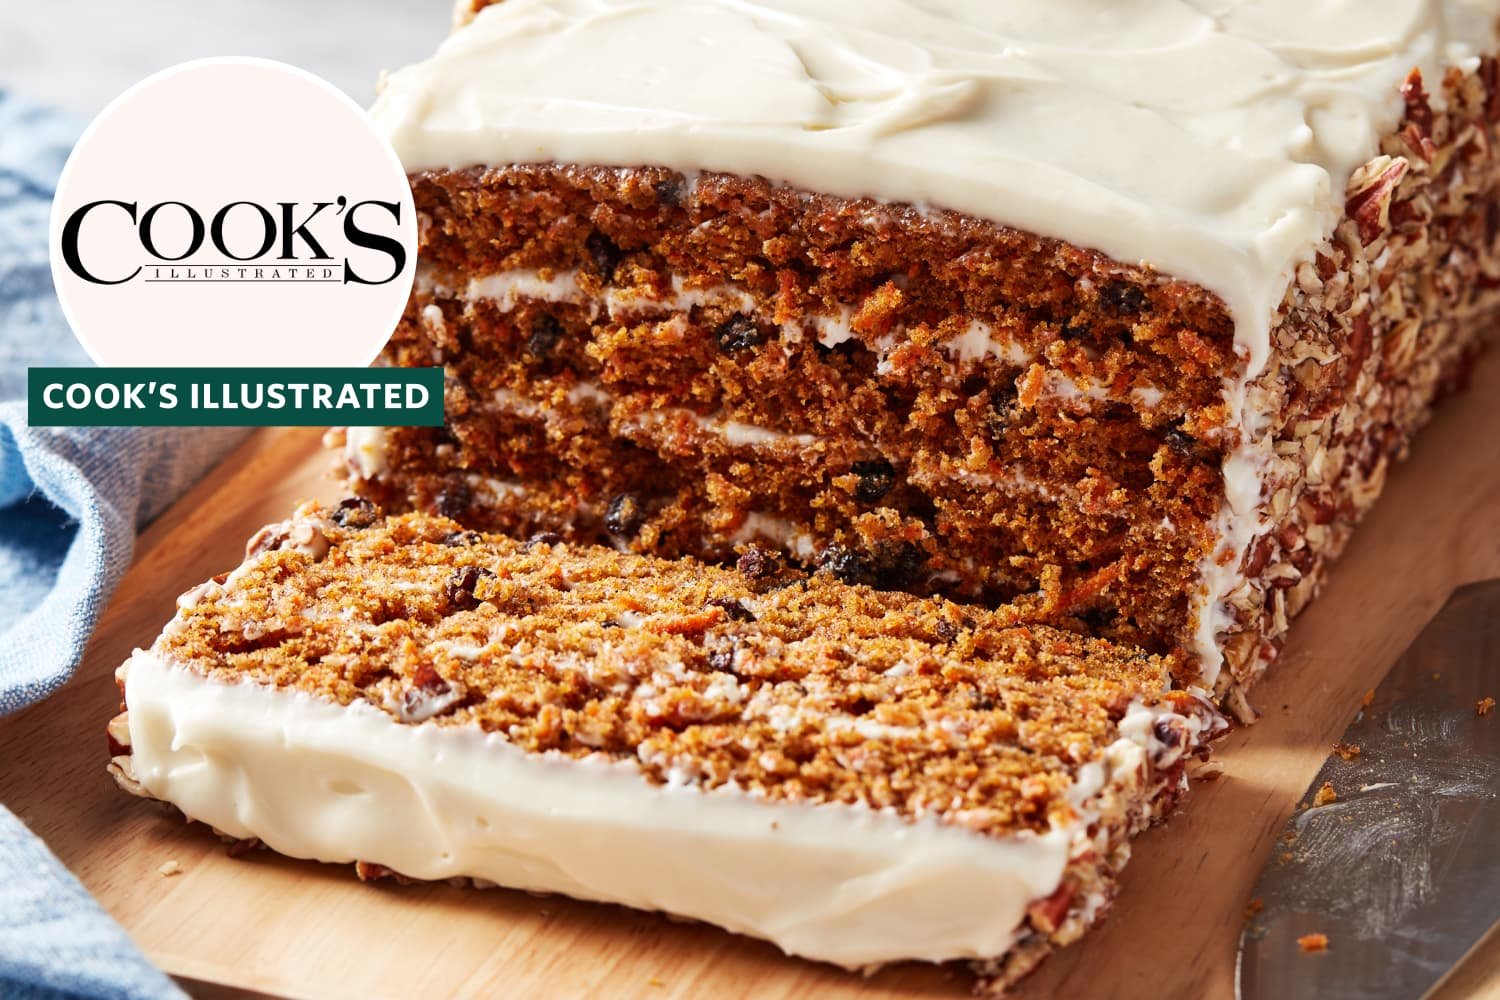 I Tried Cook's Illustrated Rule-Breaking Carrot Cake (and Honestly, I Can't Stop Eating It)